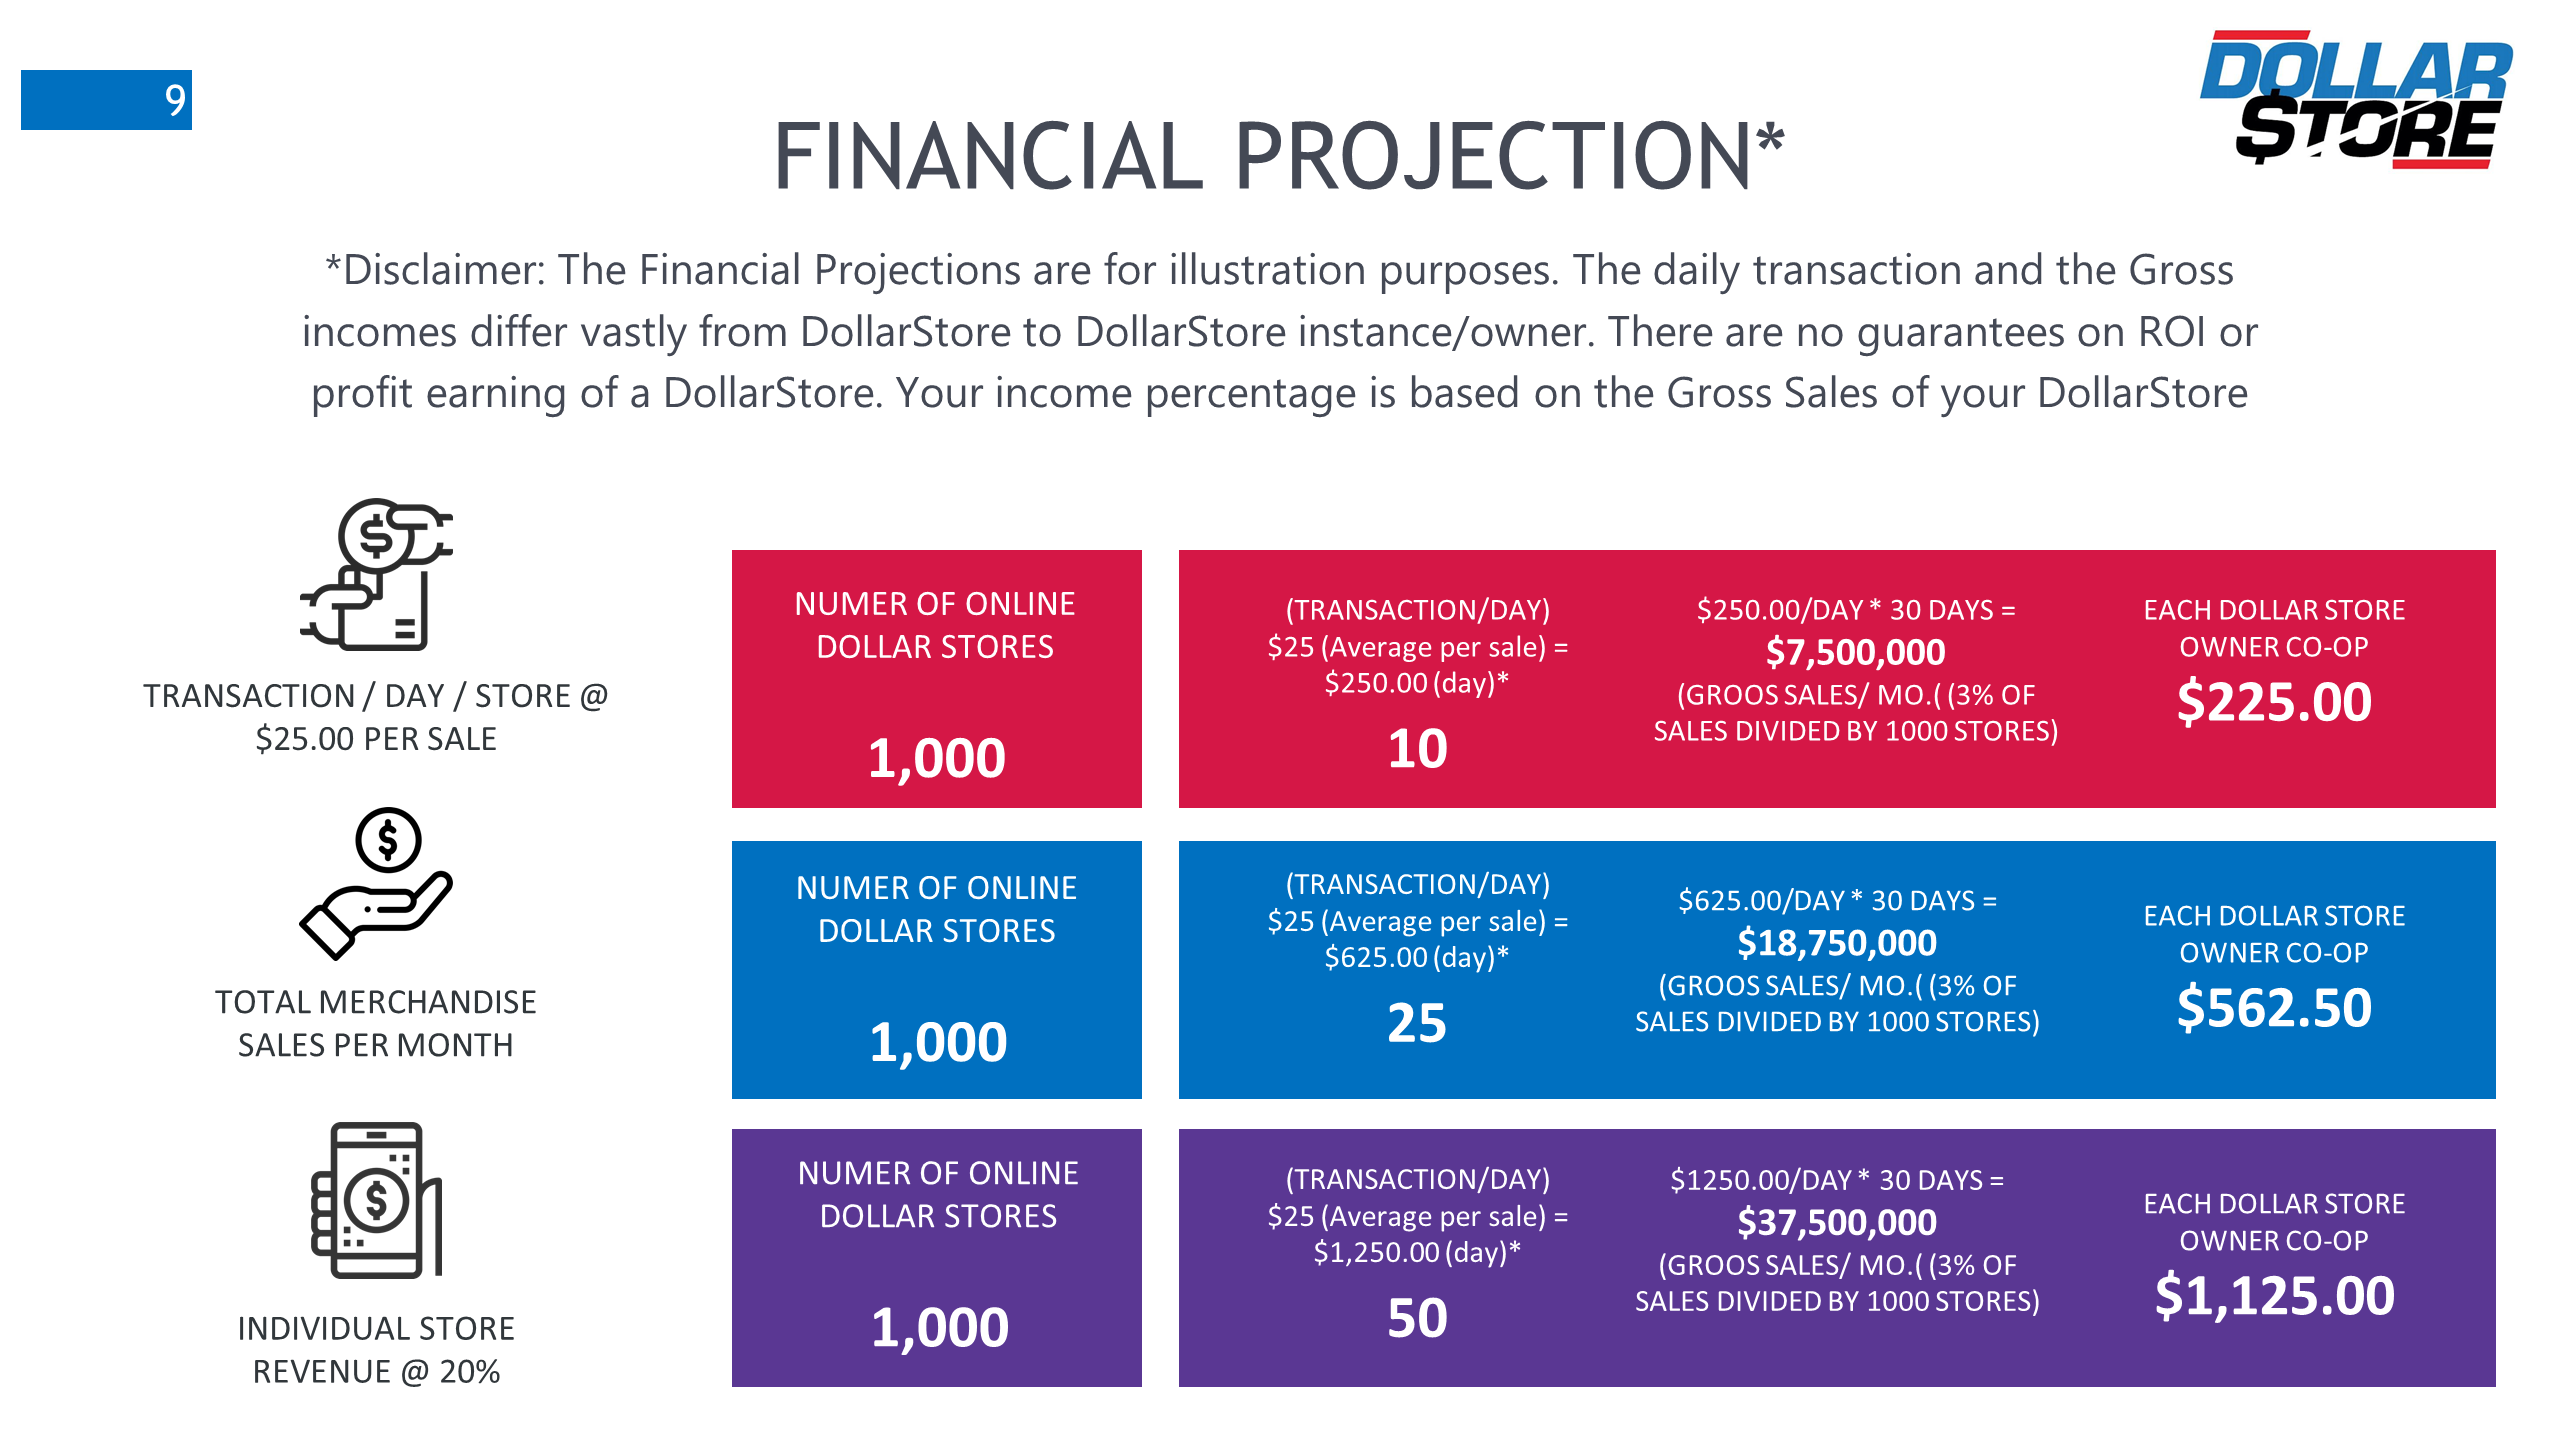 DollarStore financial projections